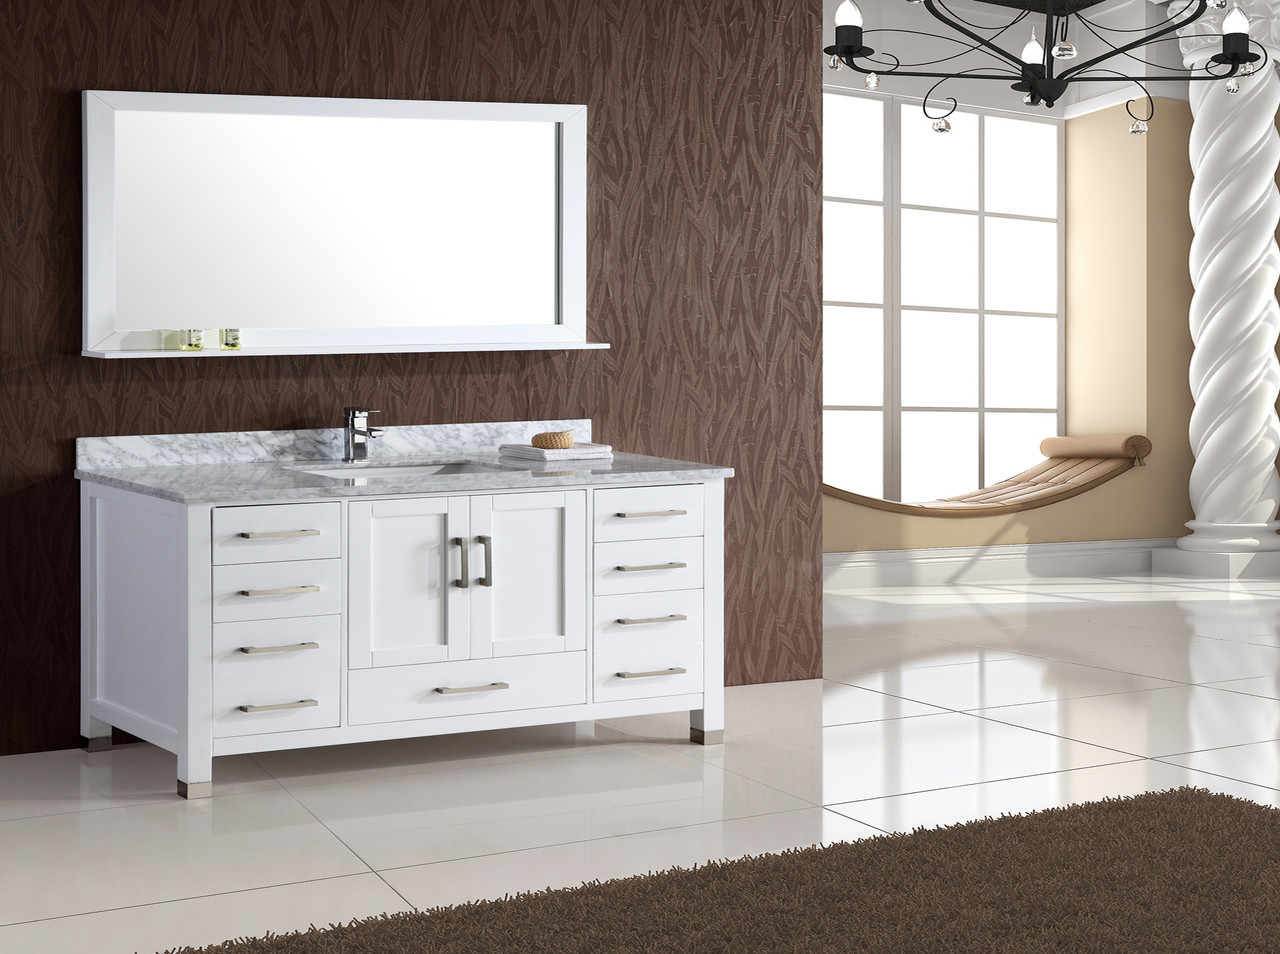 Armada 52 White Single Sink Bathroom Vanity